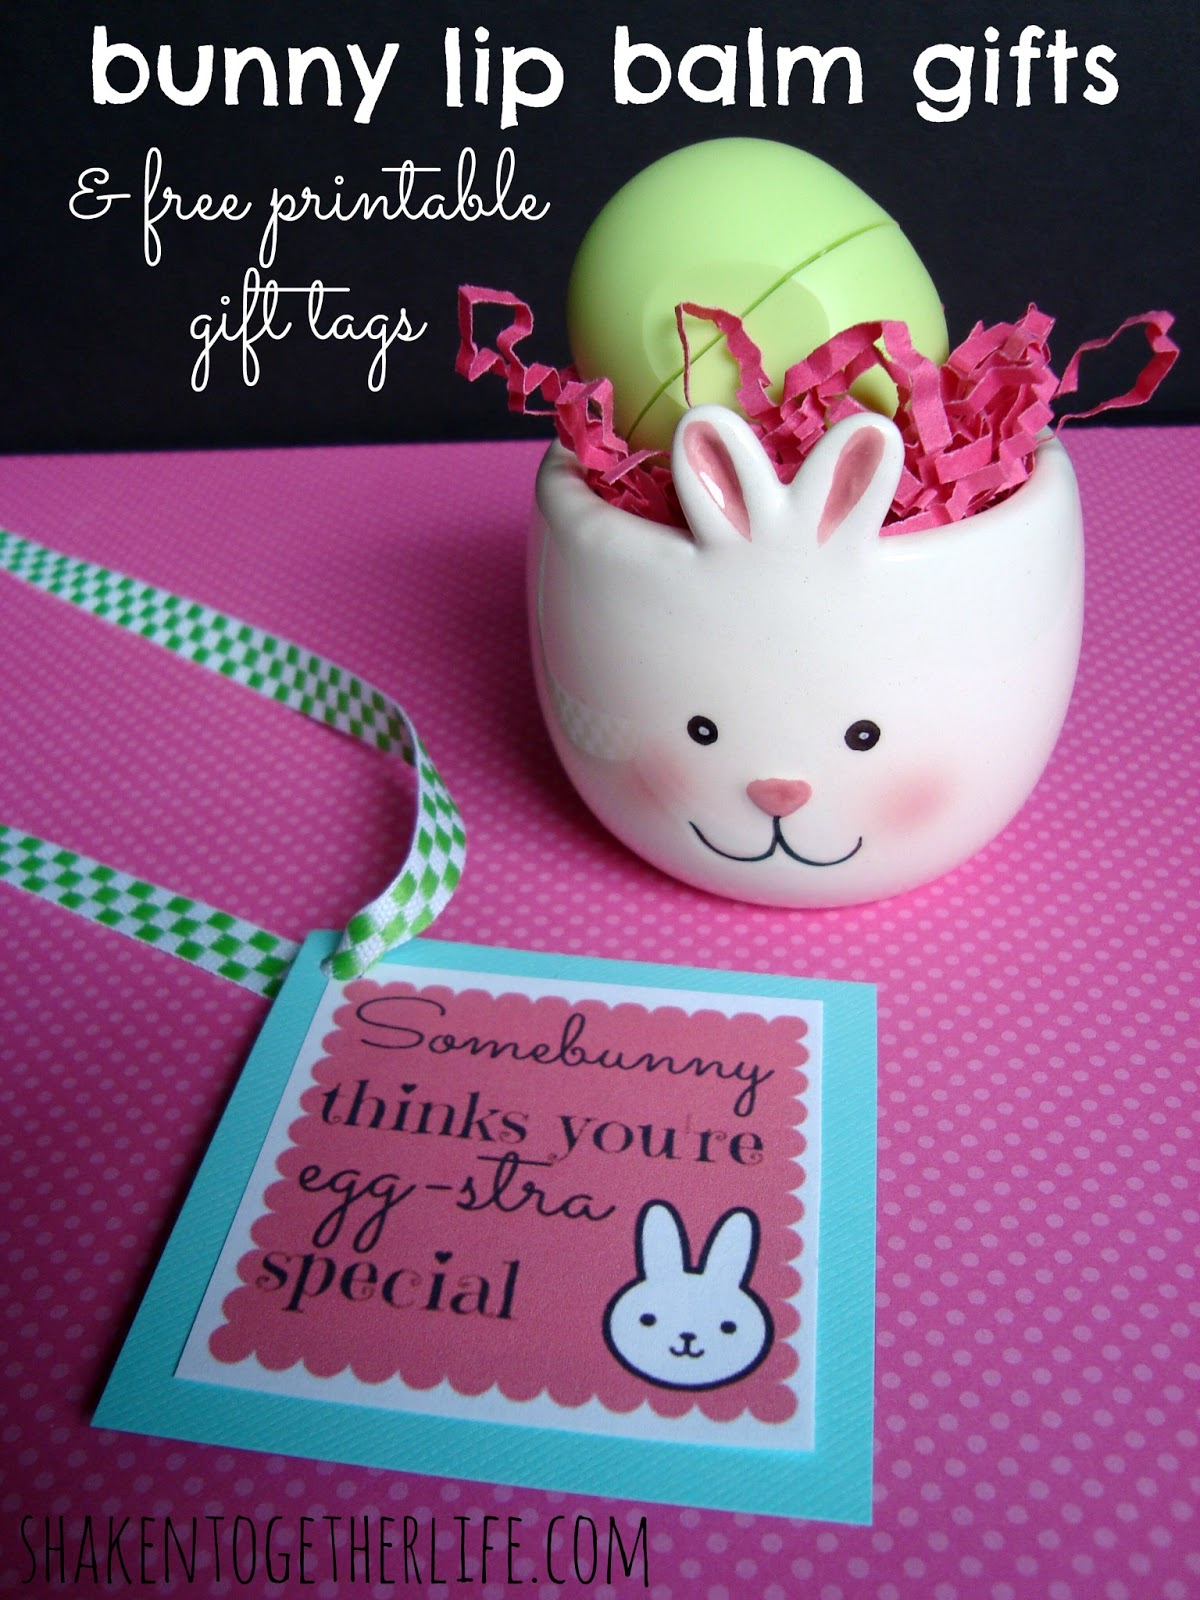 Bunny lip balm gifts for easter printable tags if you need a quick inexpensive easter or spring gift for teachers your baby sitter co workers teens and tweens this one could be it negle